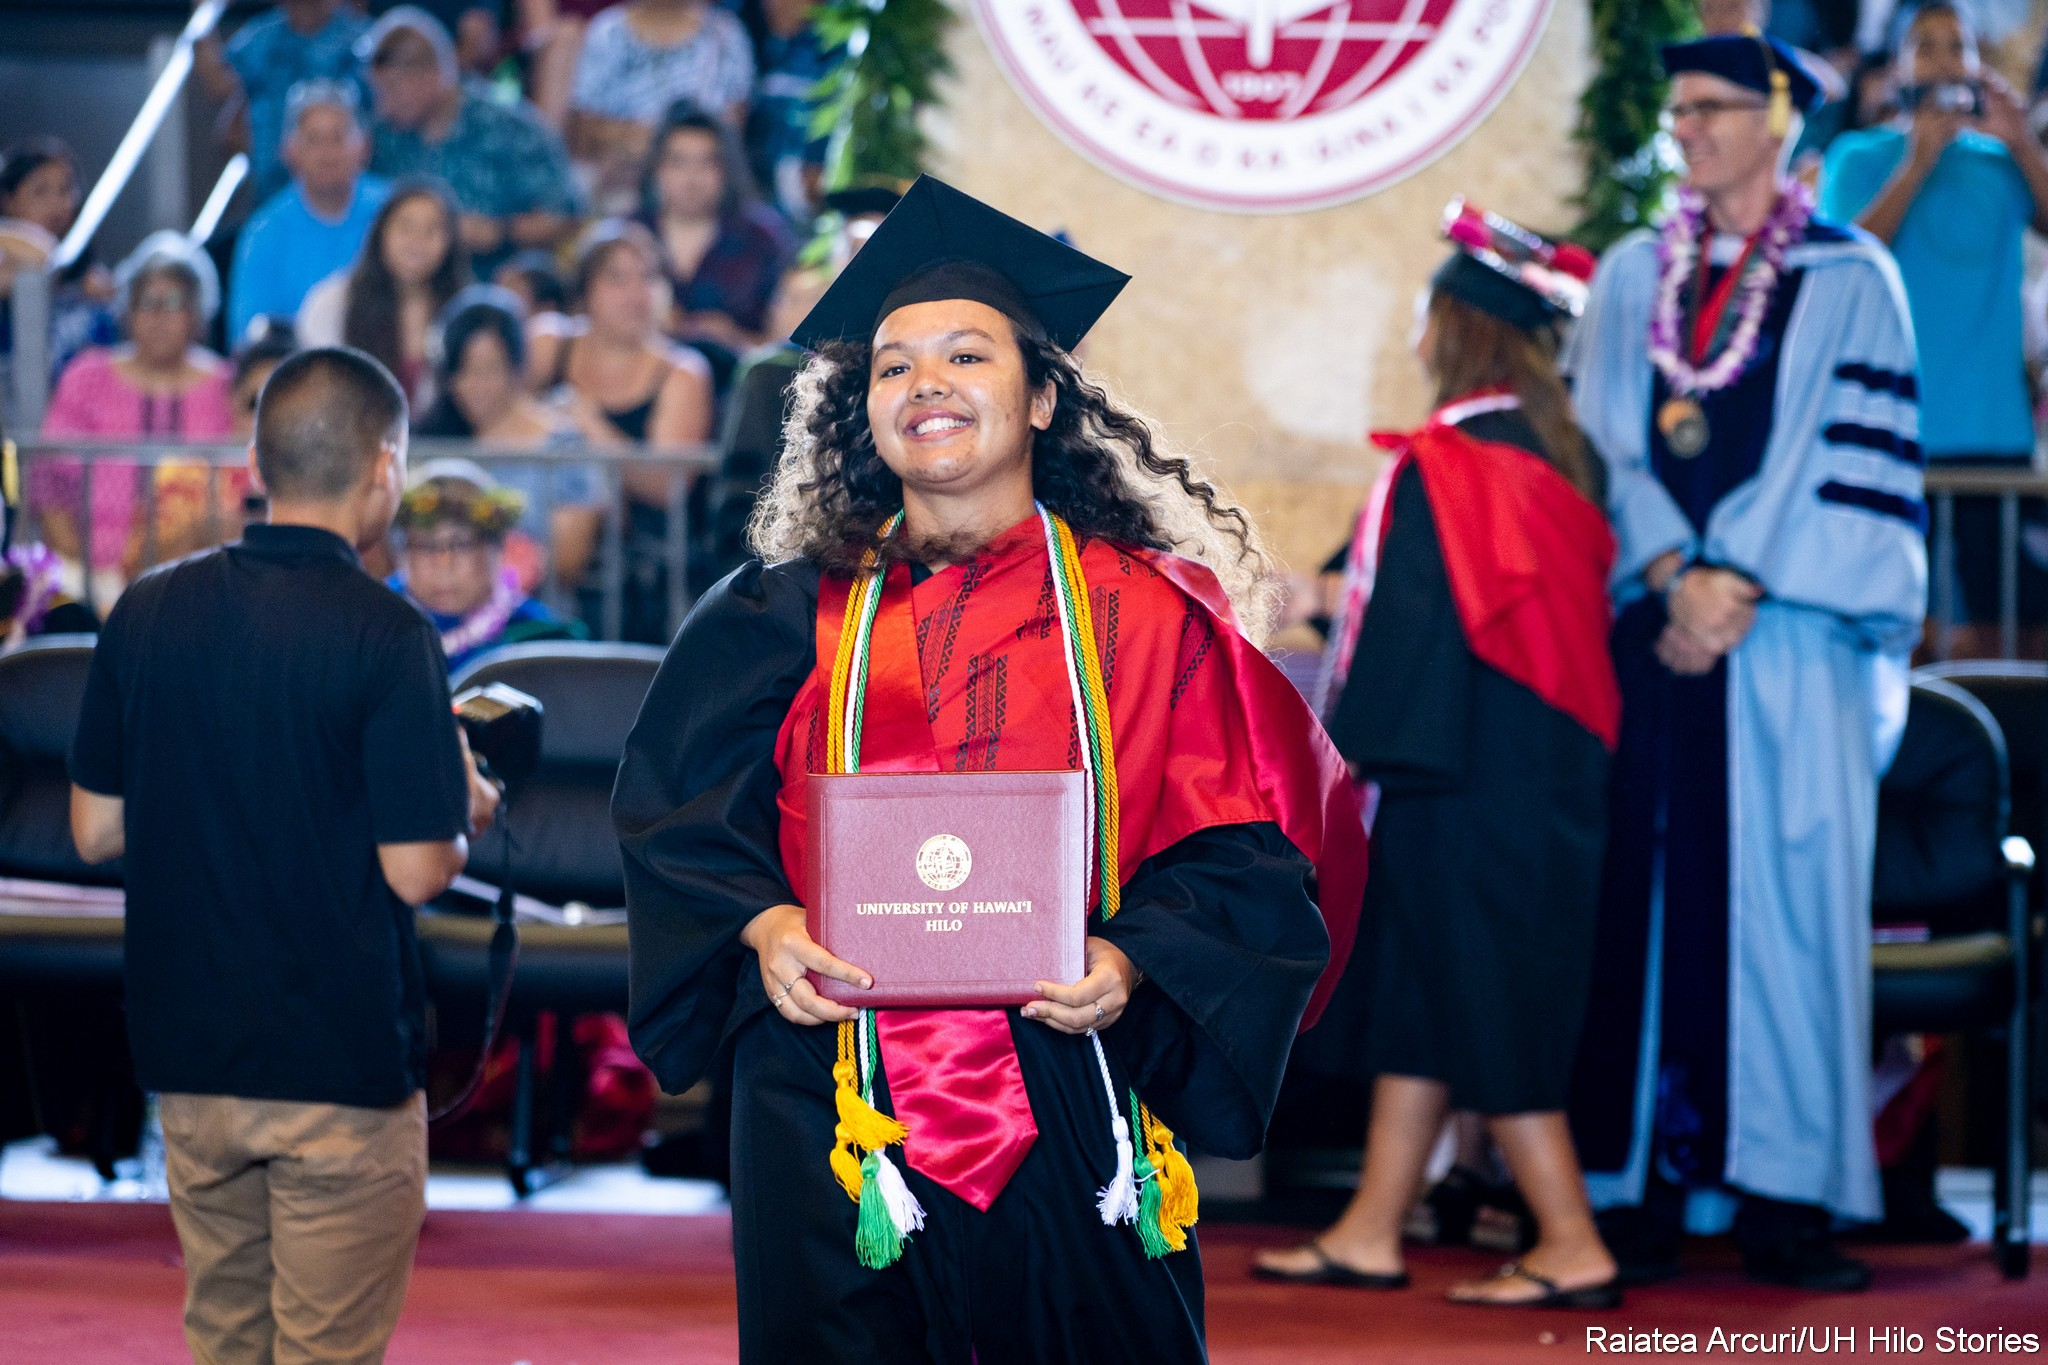 Female graduate with wavy hair leaving dais with diploma.